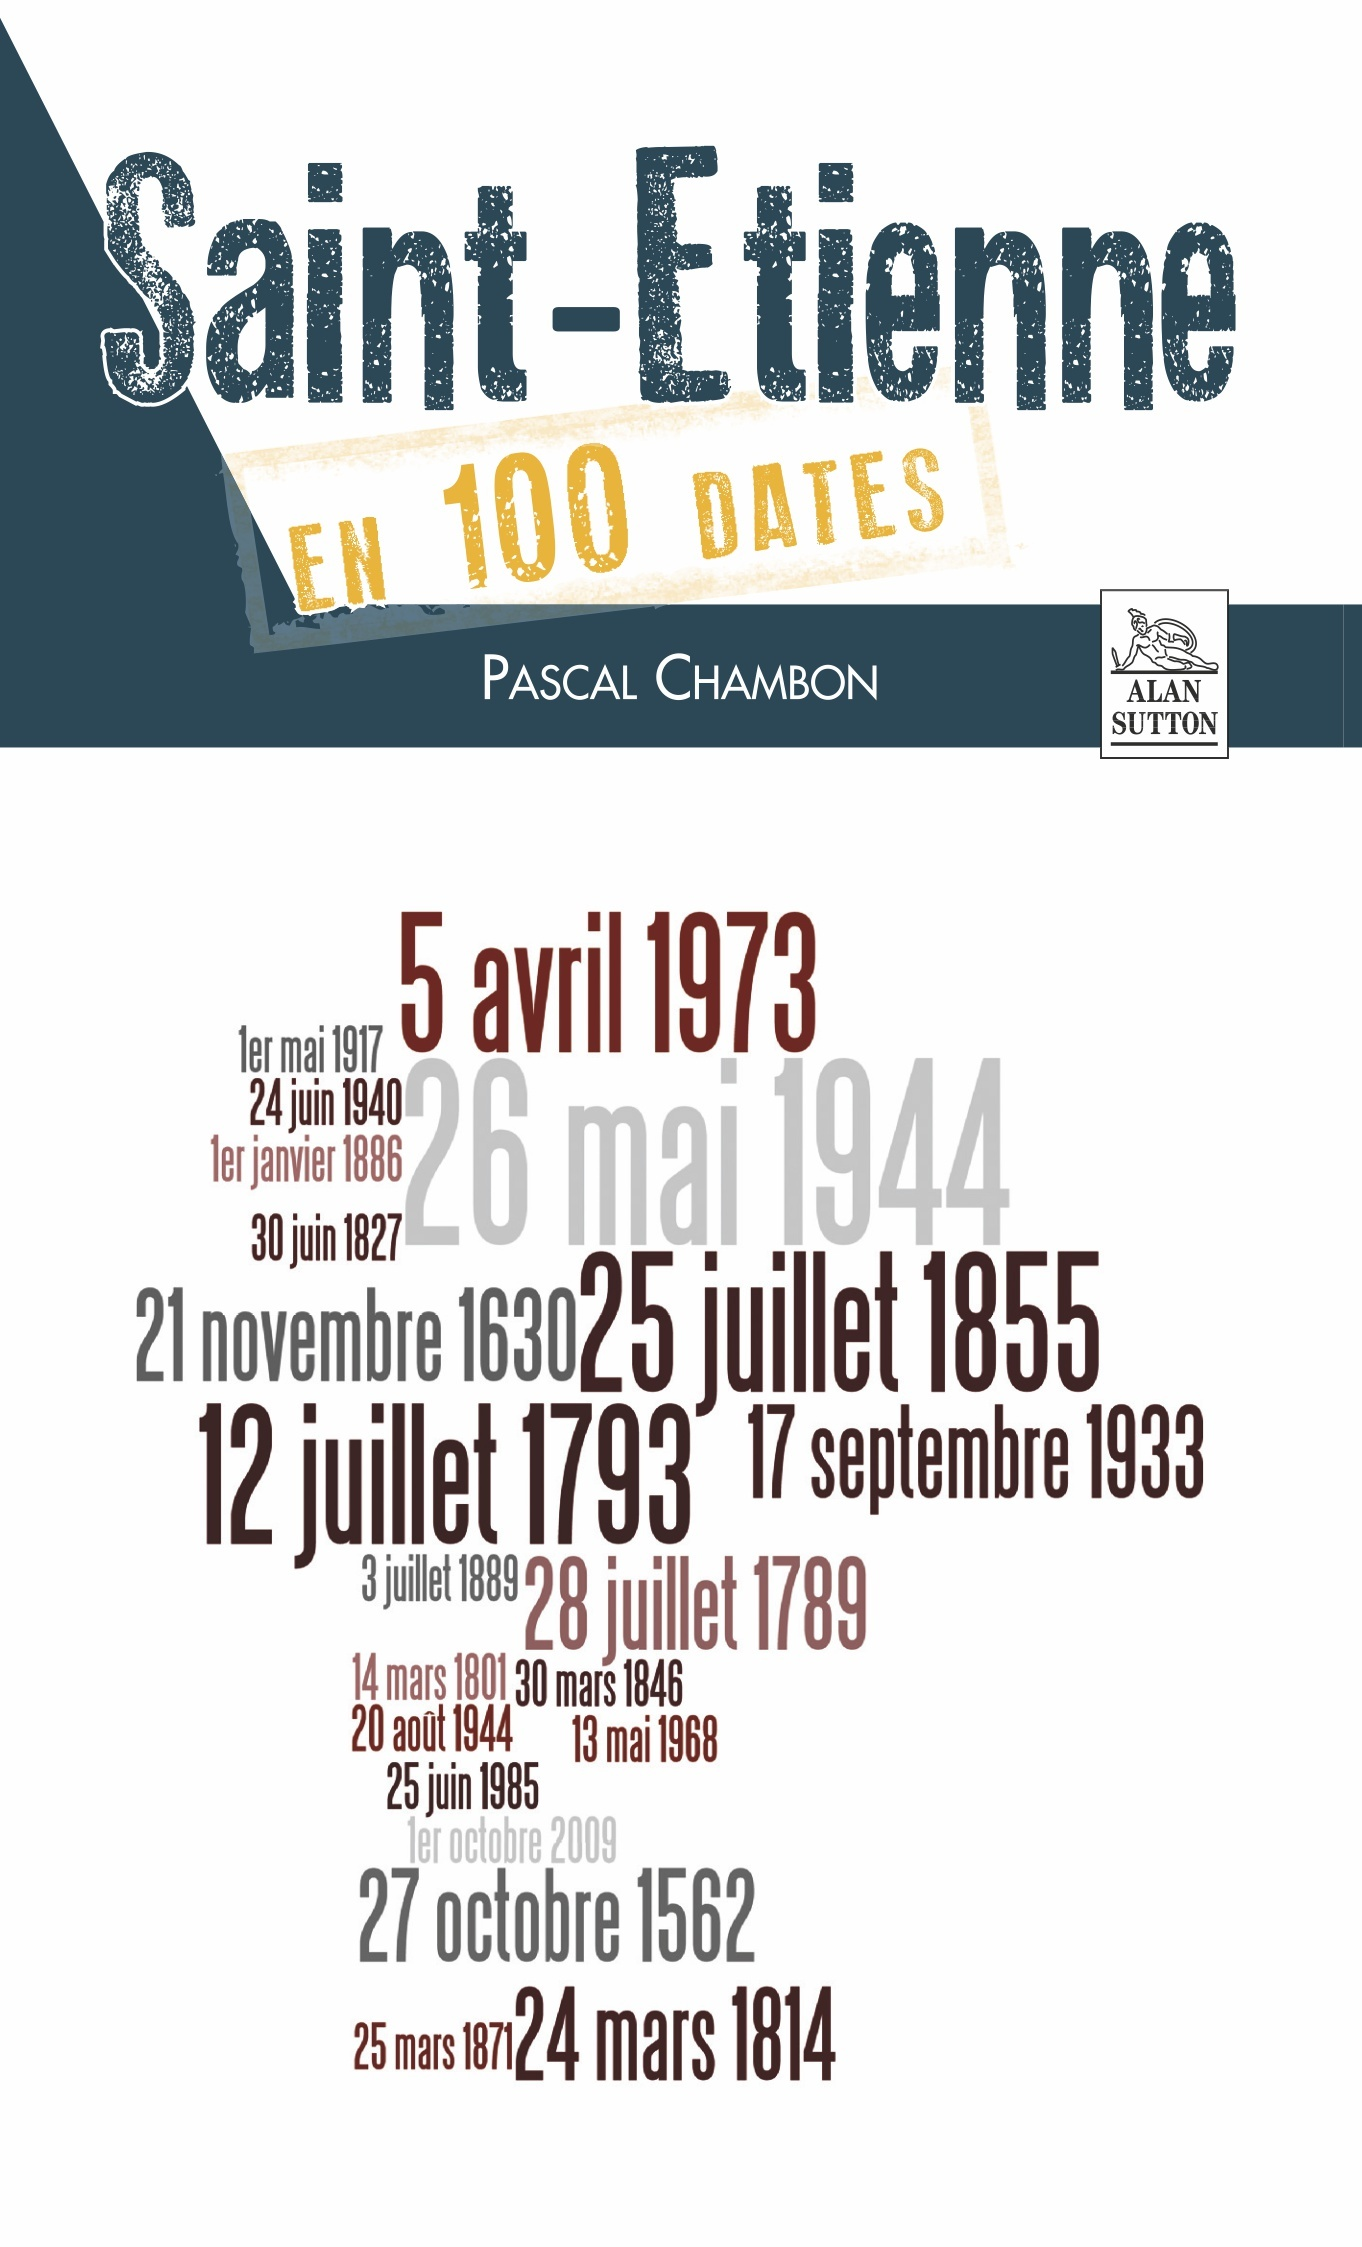 SAINT-ETIENNE EN 100 DATES